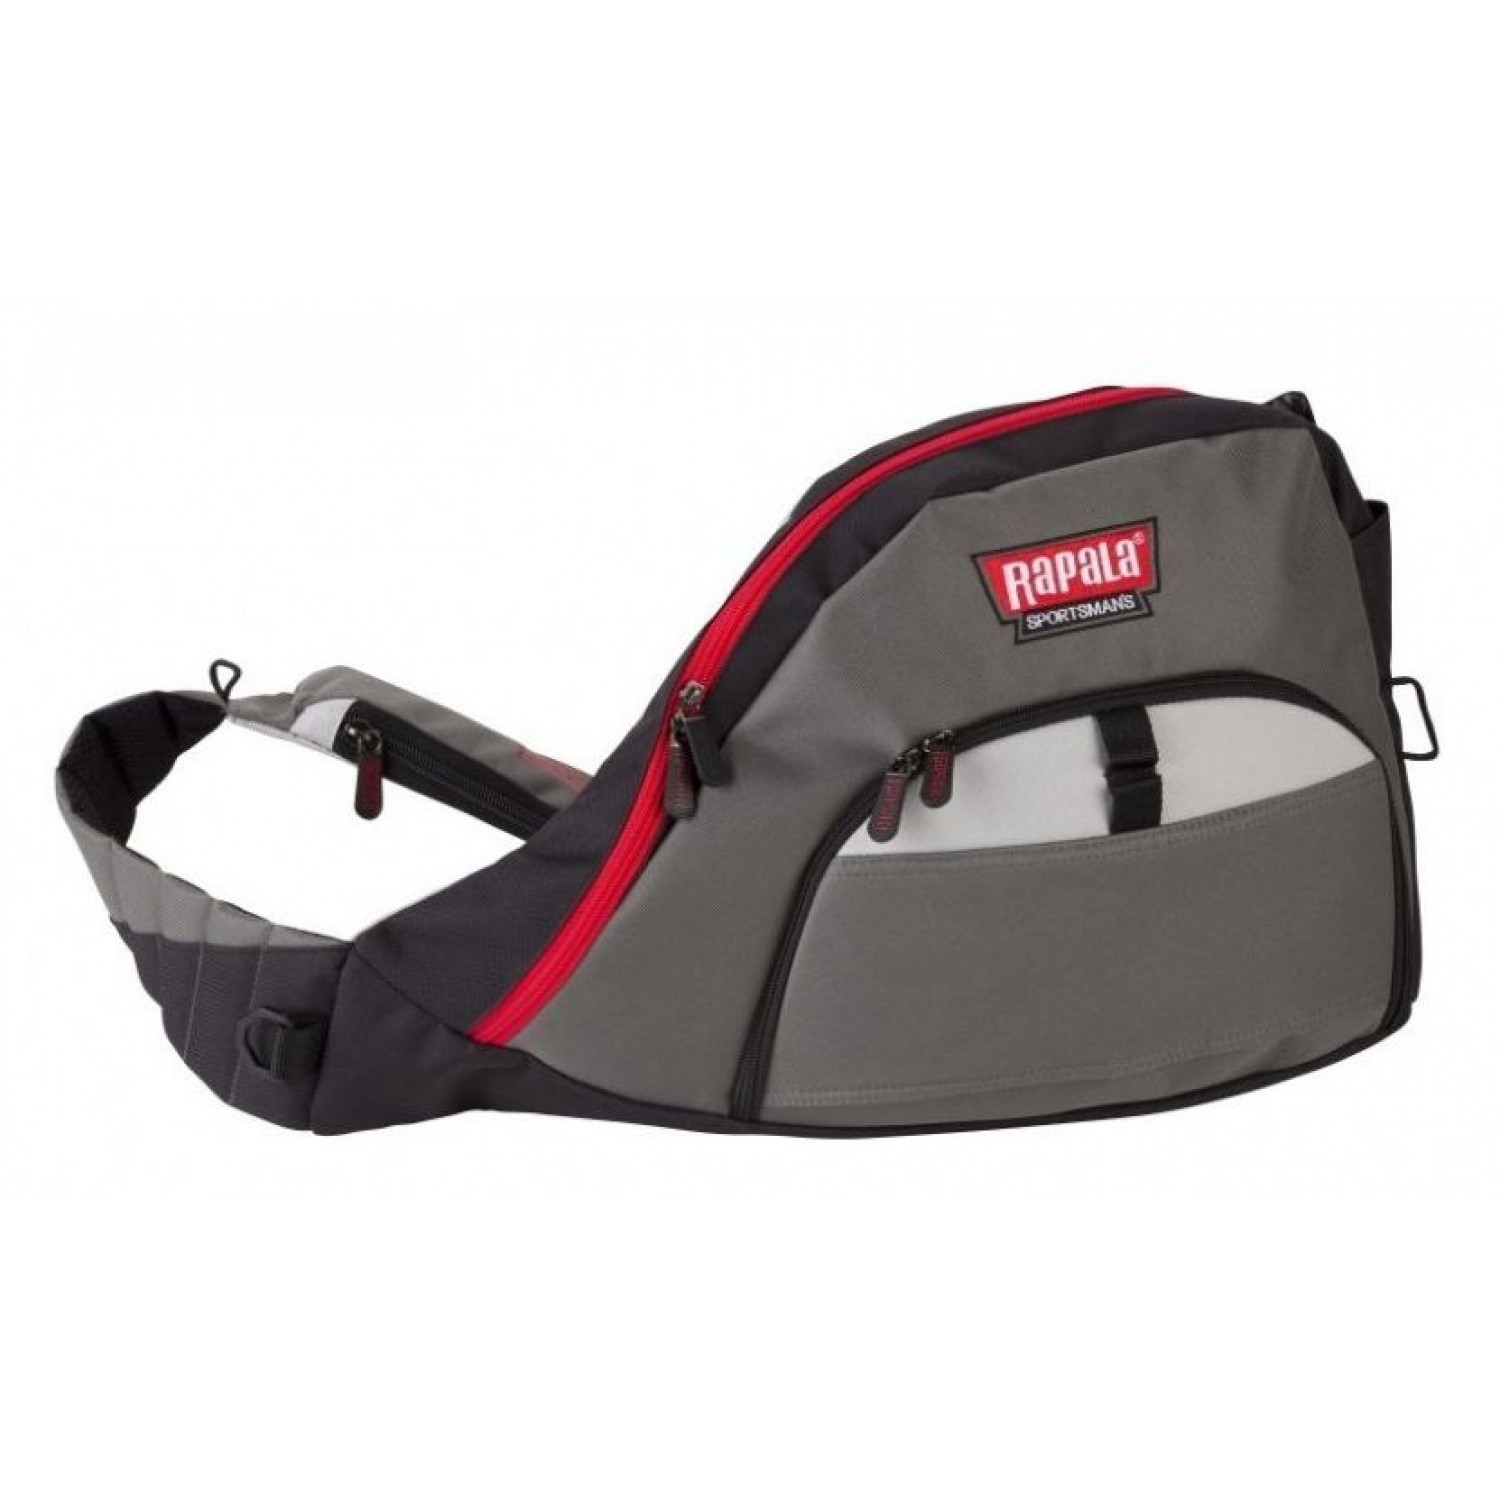 Покупка Сумка RAPALA Sportsman's 9 Soft Sling Bag в Минске Беларуси